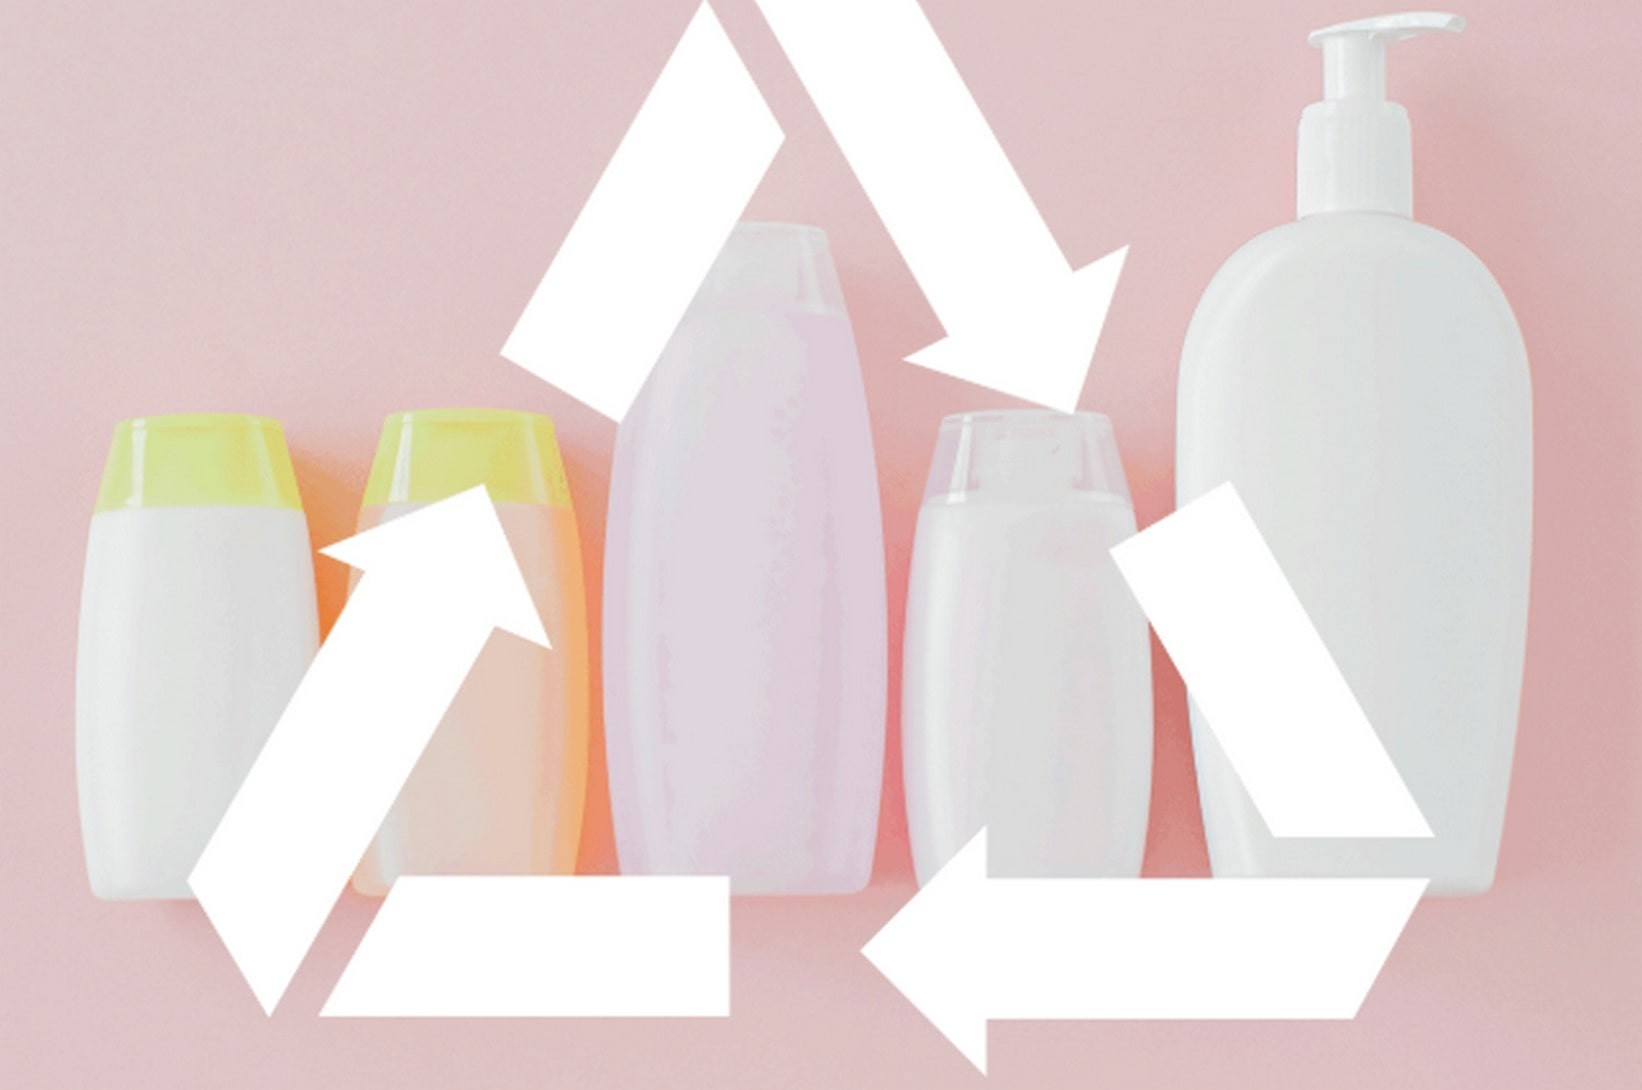 recycling beauty products with recycling symbol pasted on top of image.